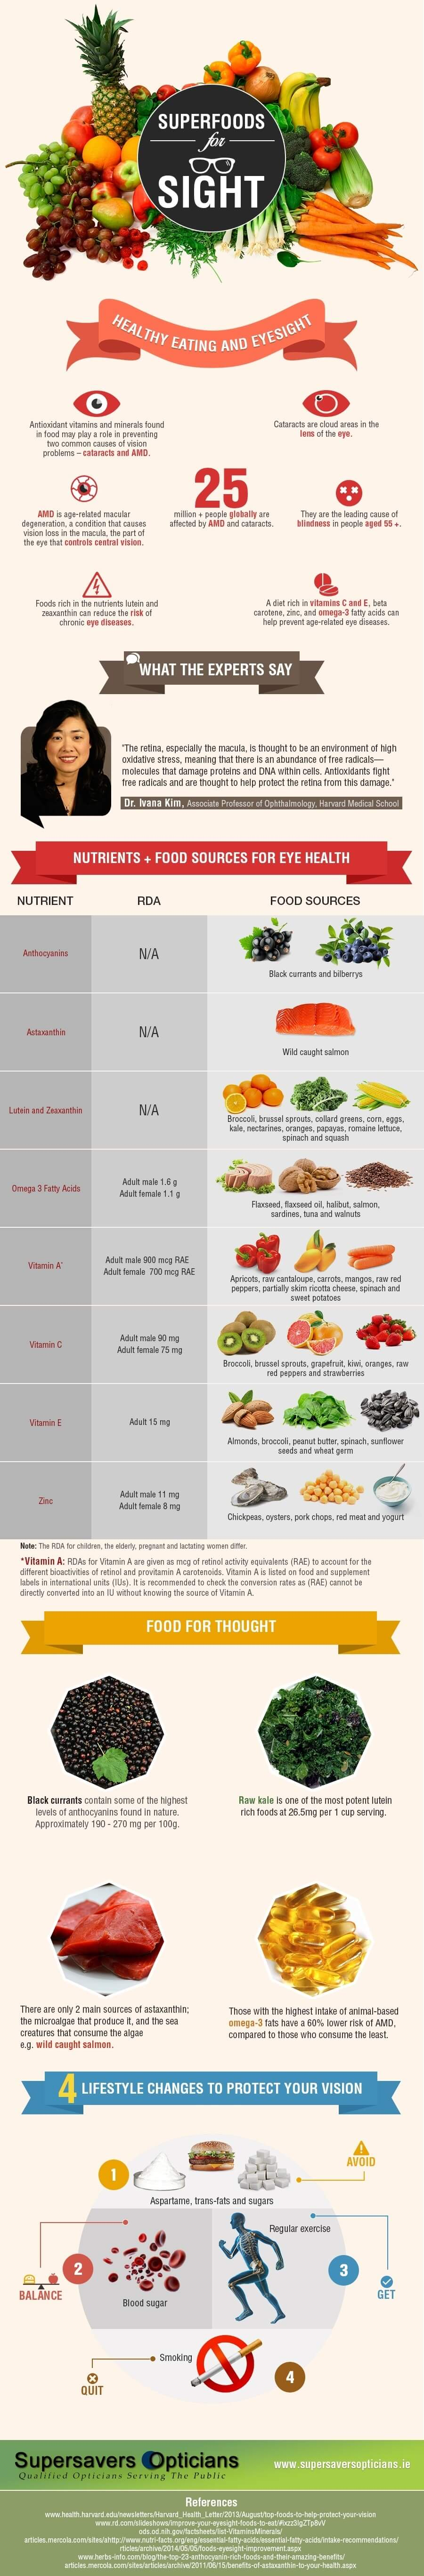 superfoods for sight